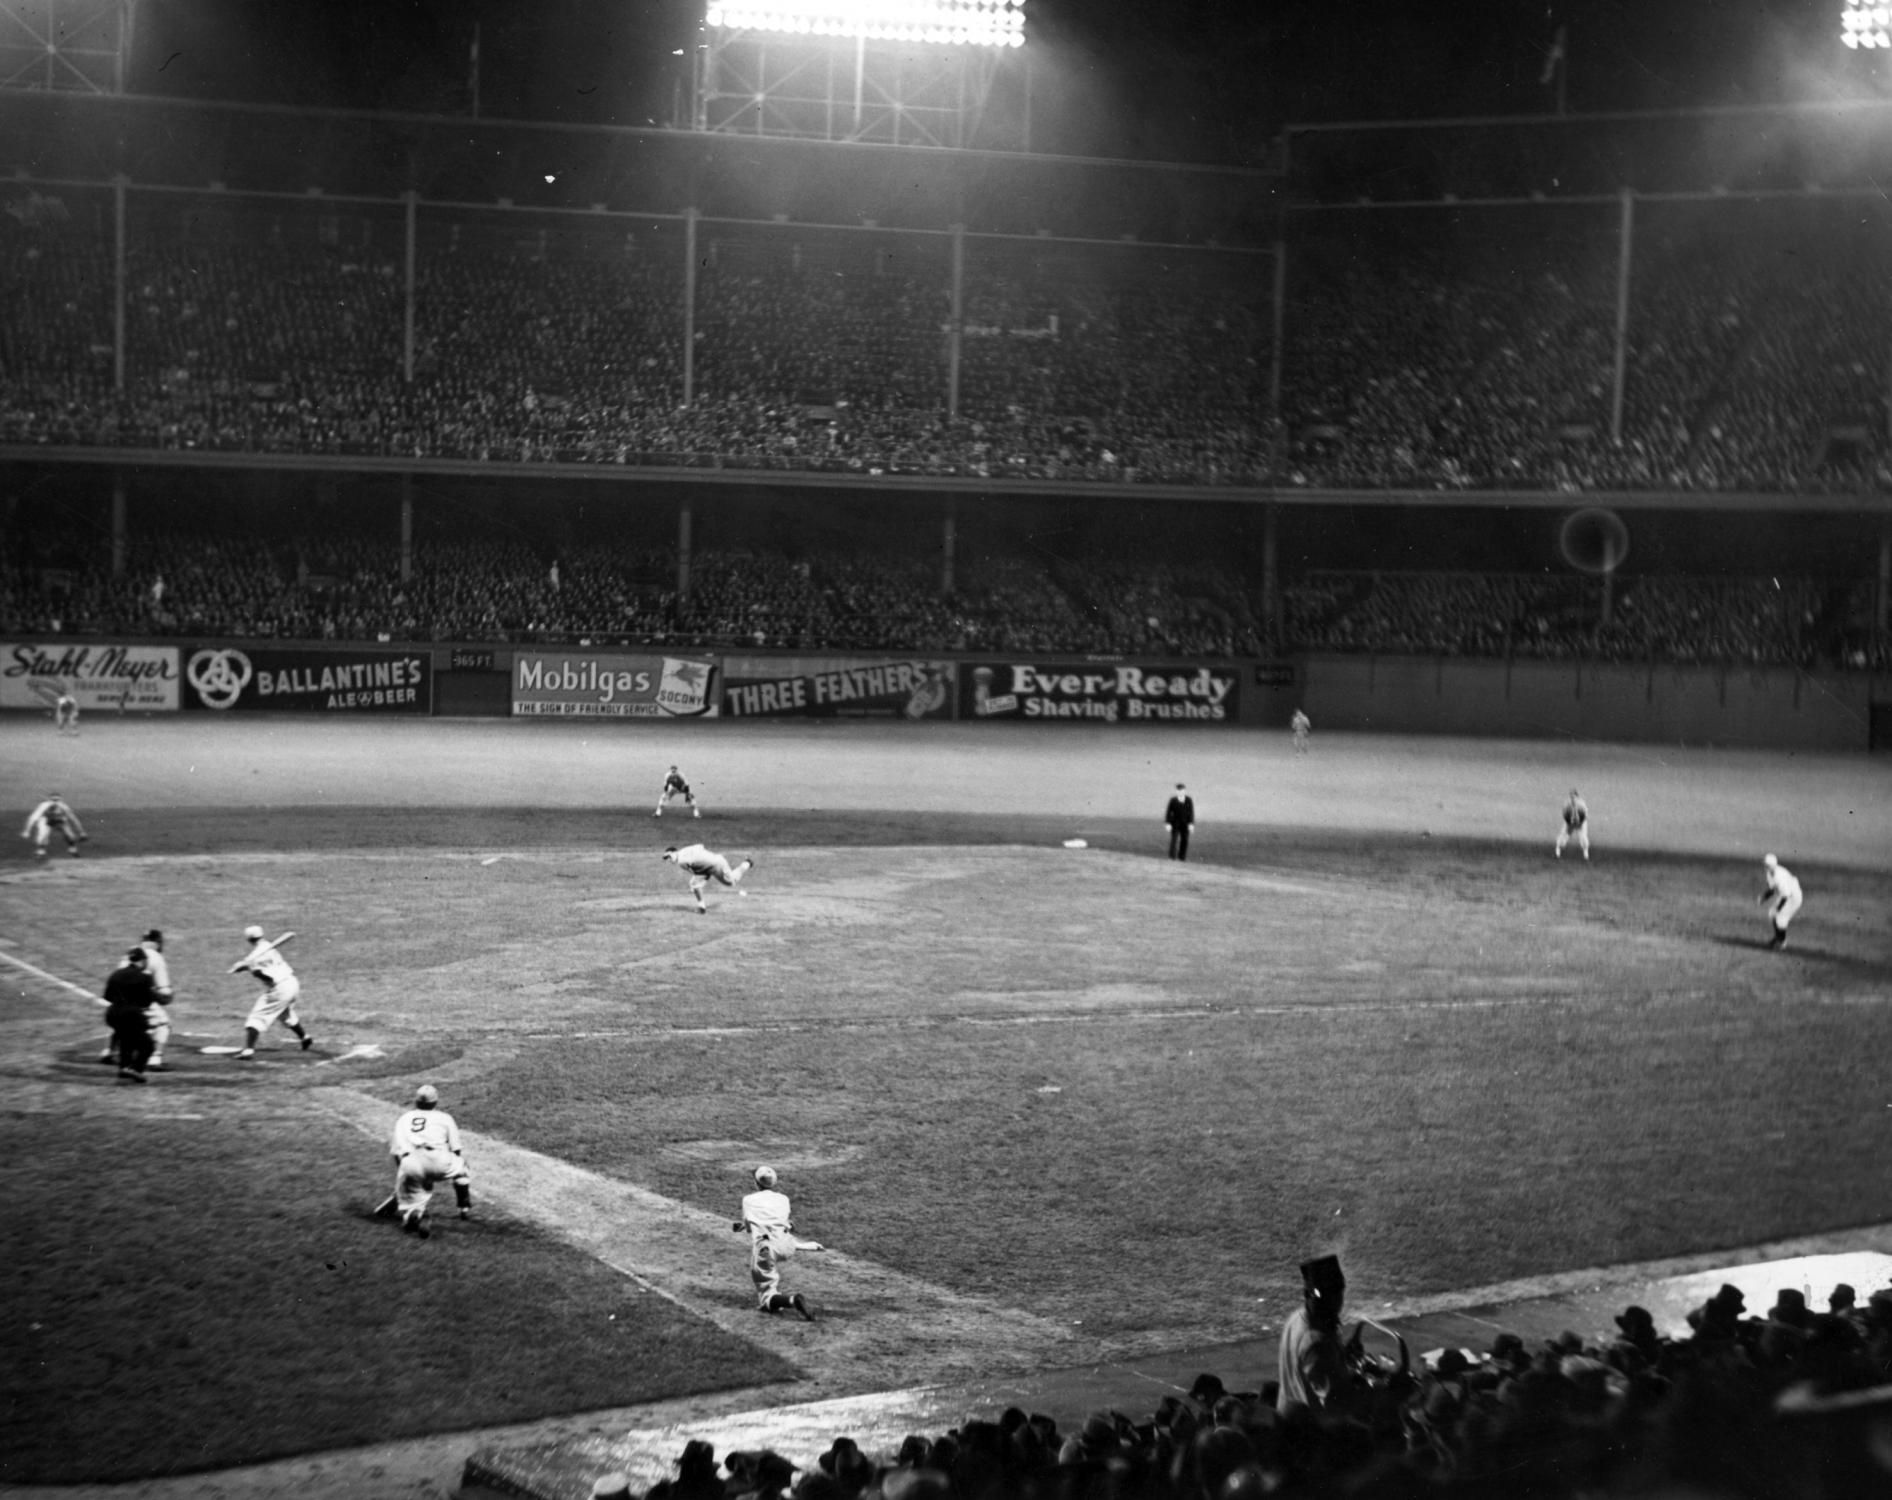 Ebbets Field, Brooklyn 6/15/38 - Dodger fans this night ...